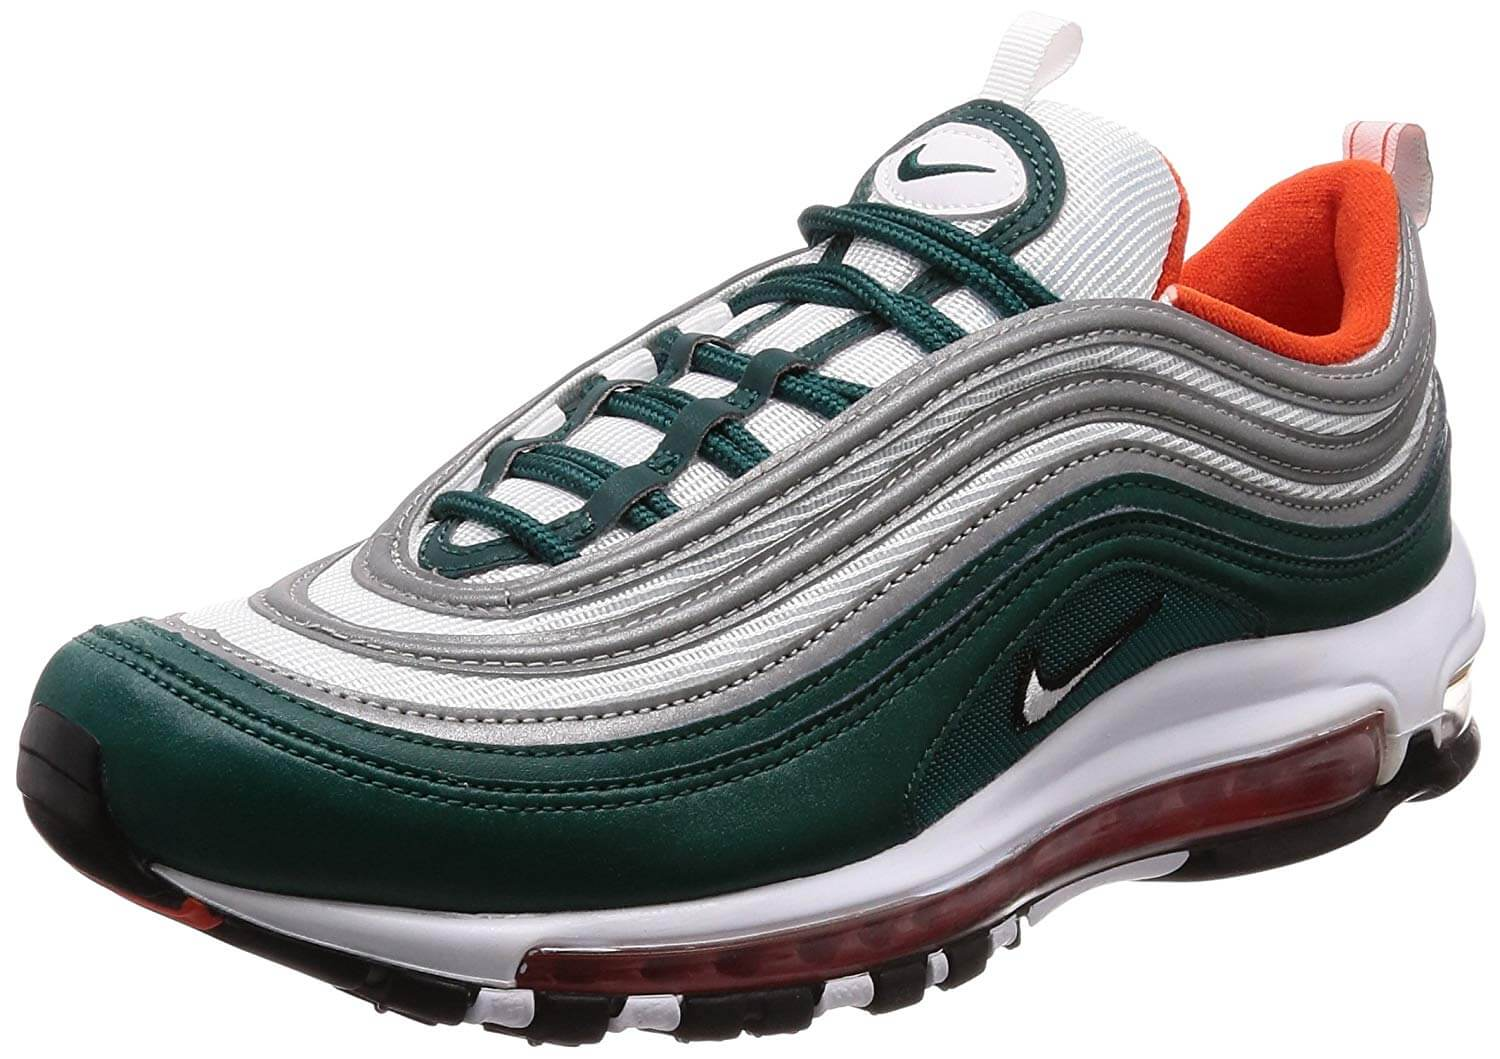 lowest price 28473 ab549 Nike Air Max 97 Reviewed - To Buy or Not in May 2019